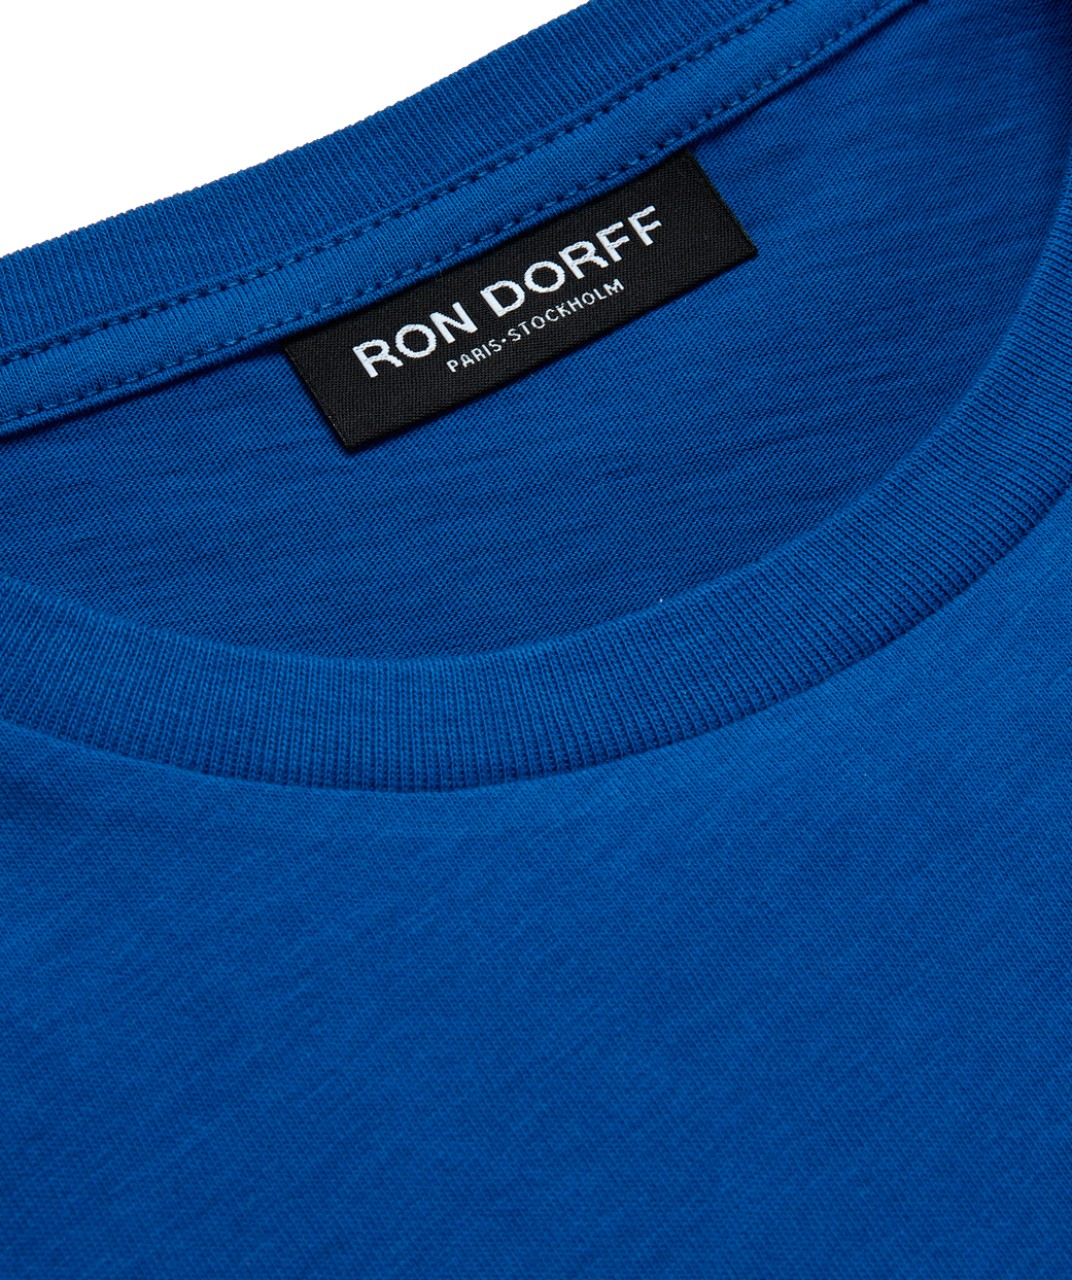 Ron Dorff T-shirt Klein Blue